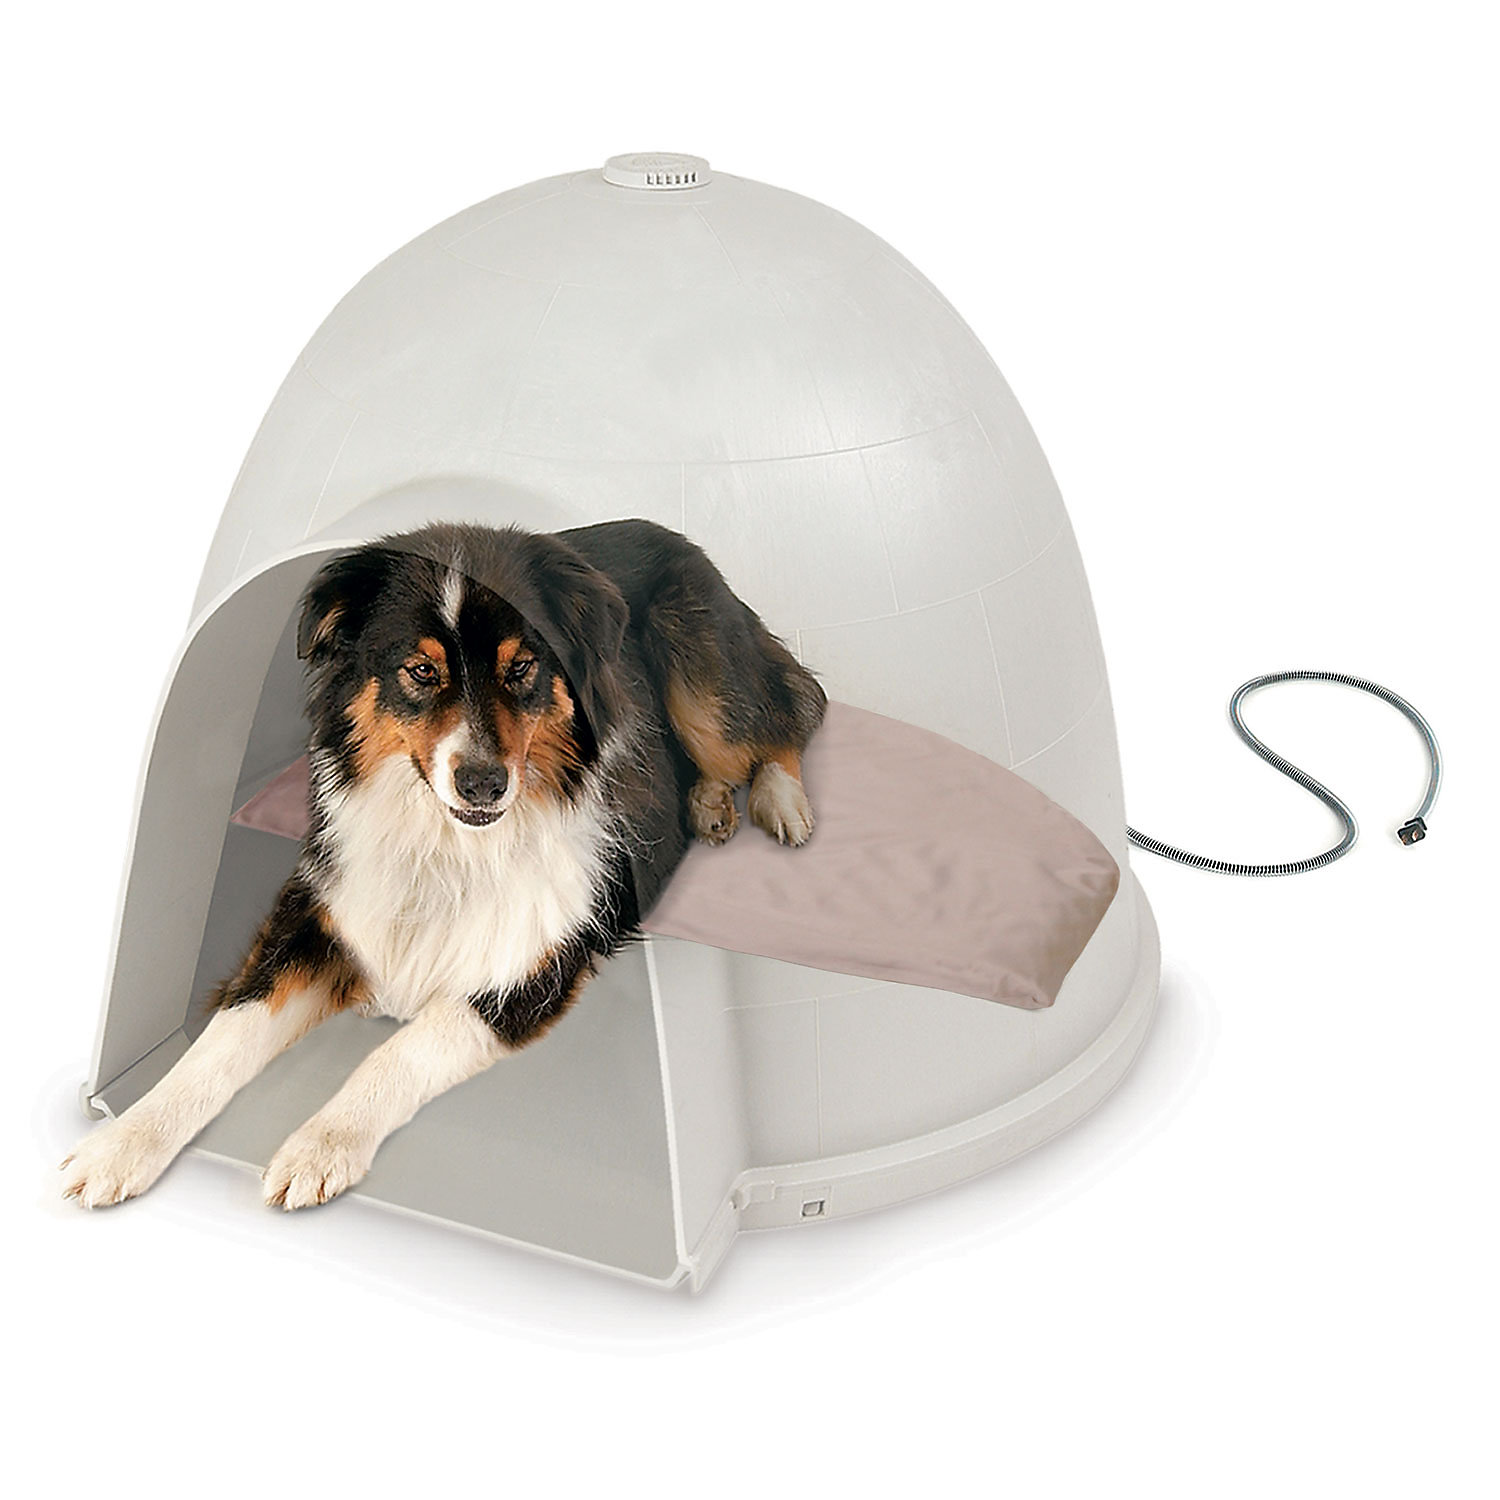 Kh Lectro Soft Igloo Style Heated Dog Bed